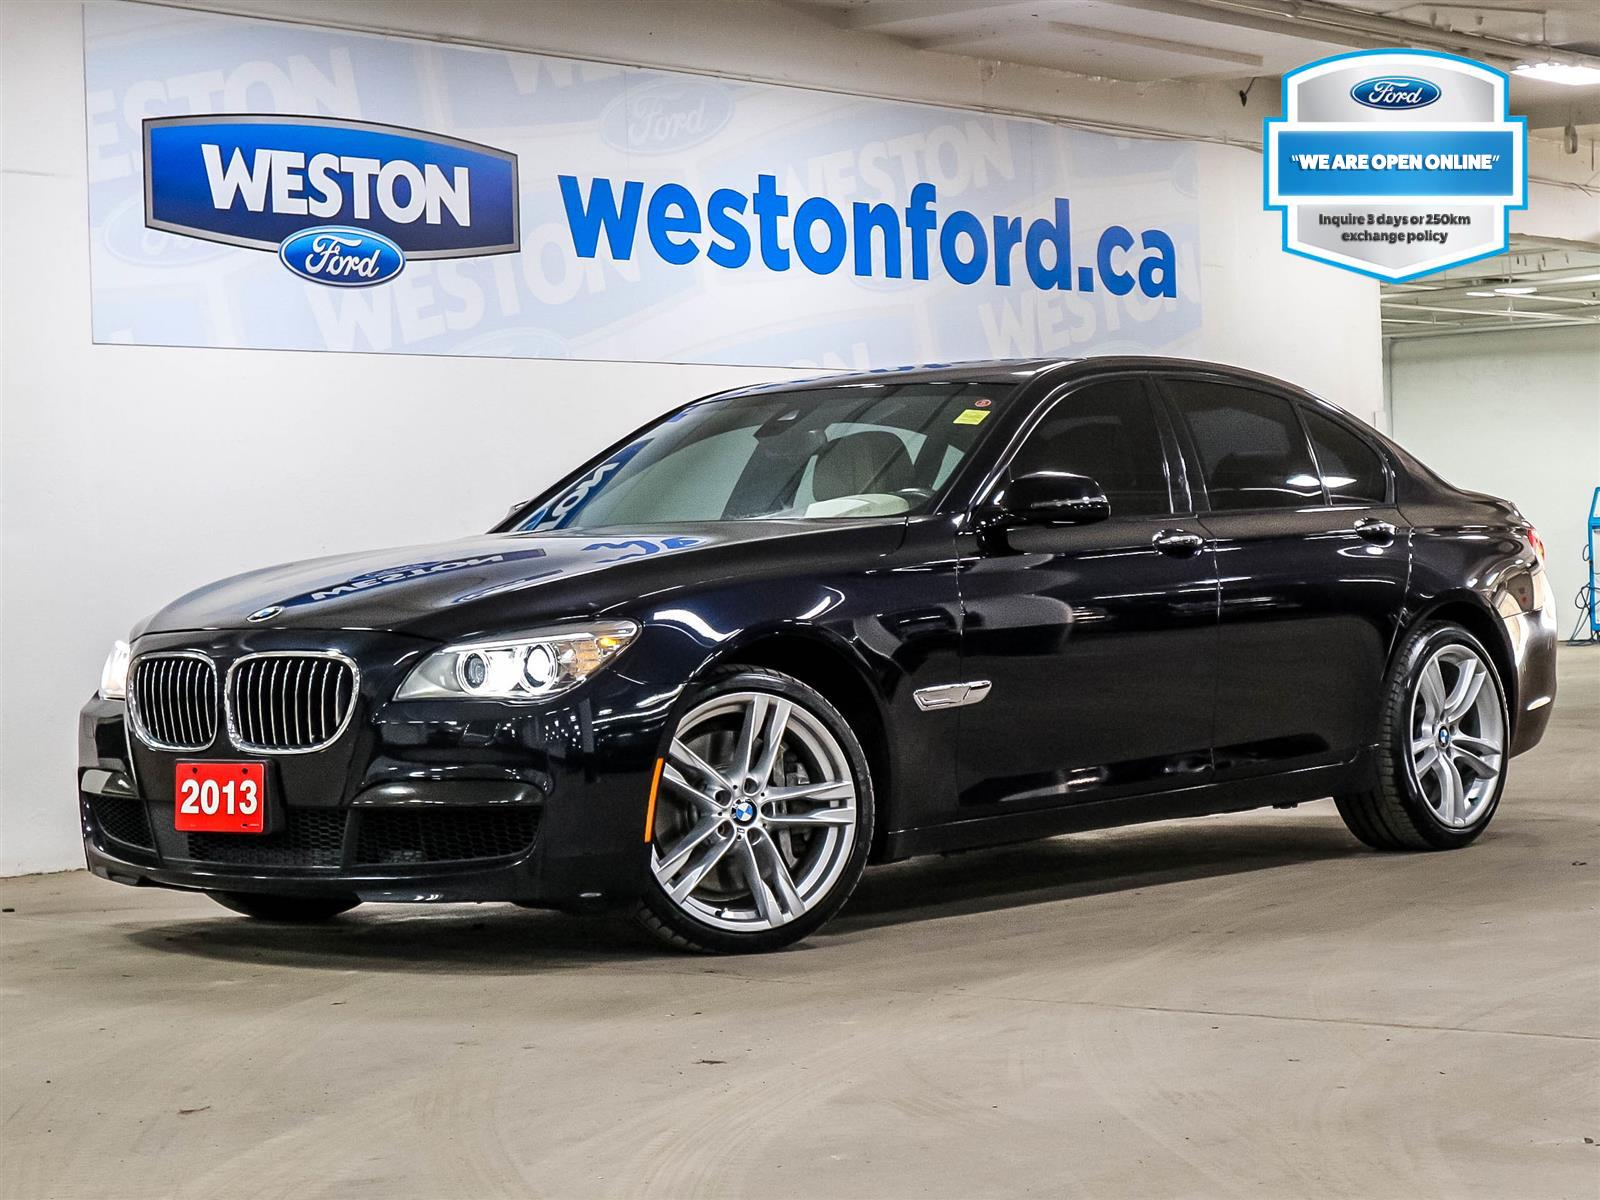 used 2013 BMW 750i car, priced at $23,988